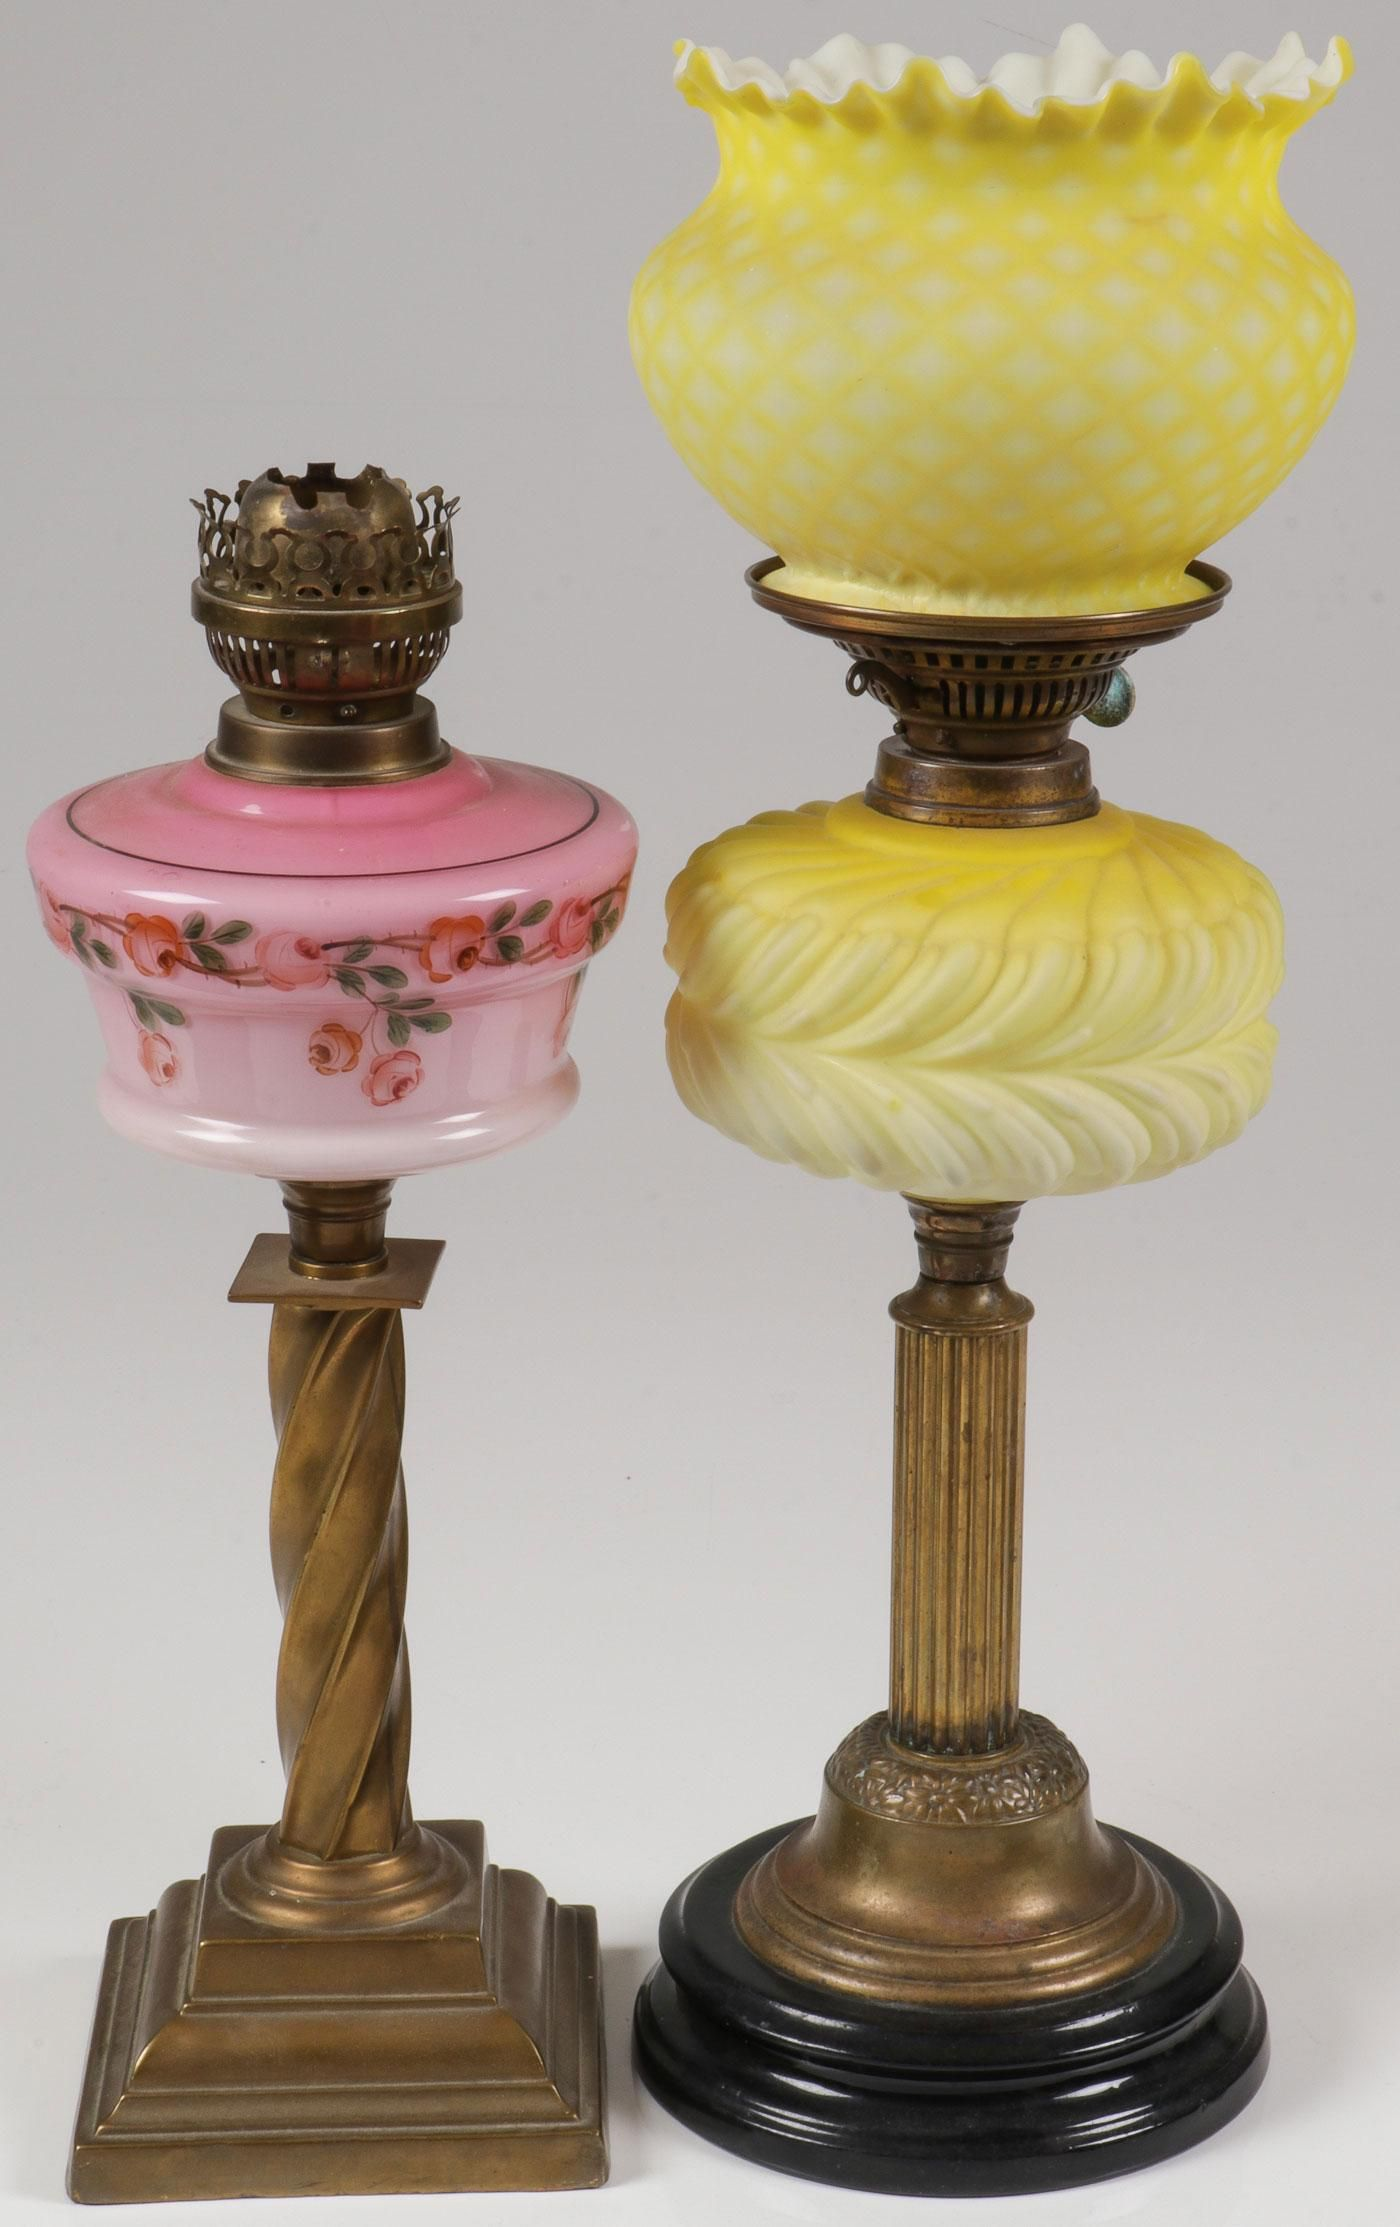 TWO VICTORIAN ART GLASS PARLOR LAMPS